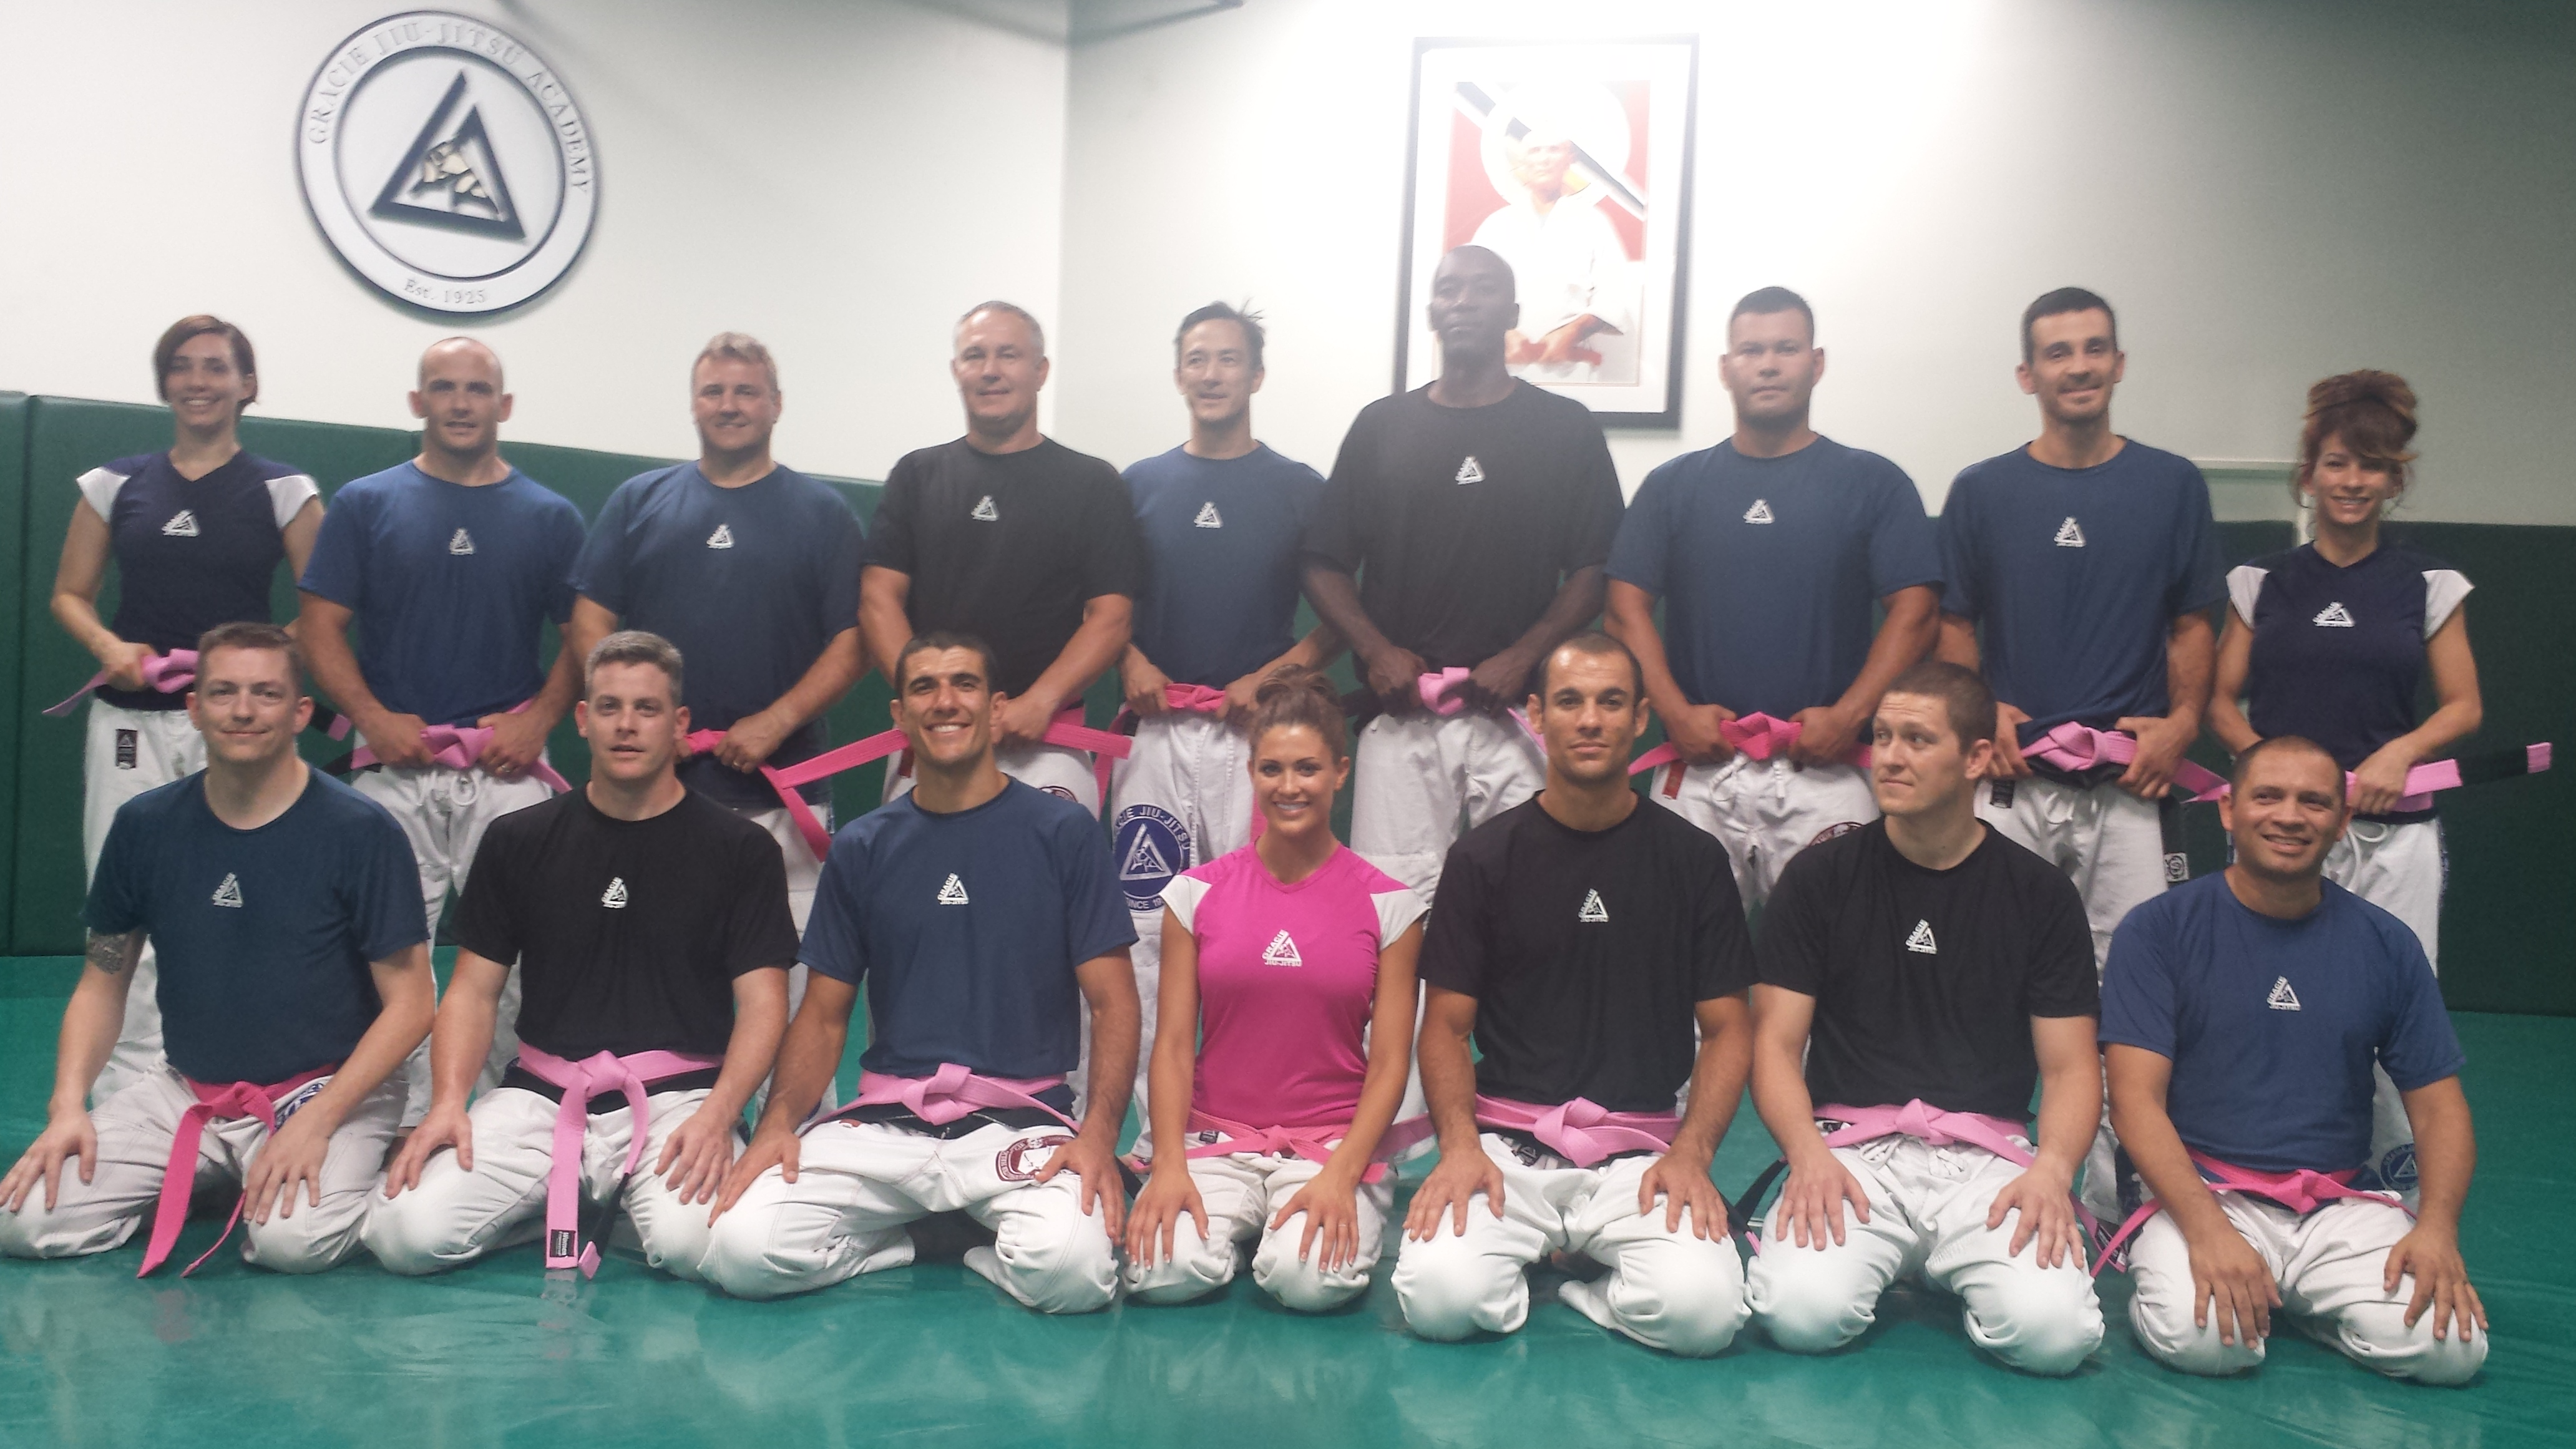 Gracie Instructor Certification program for Women Empowered